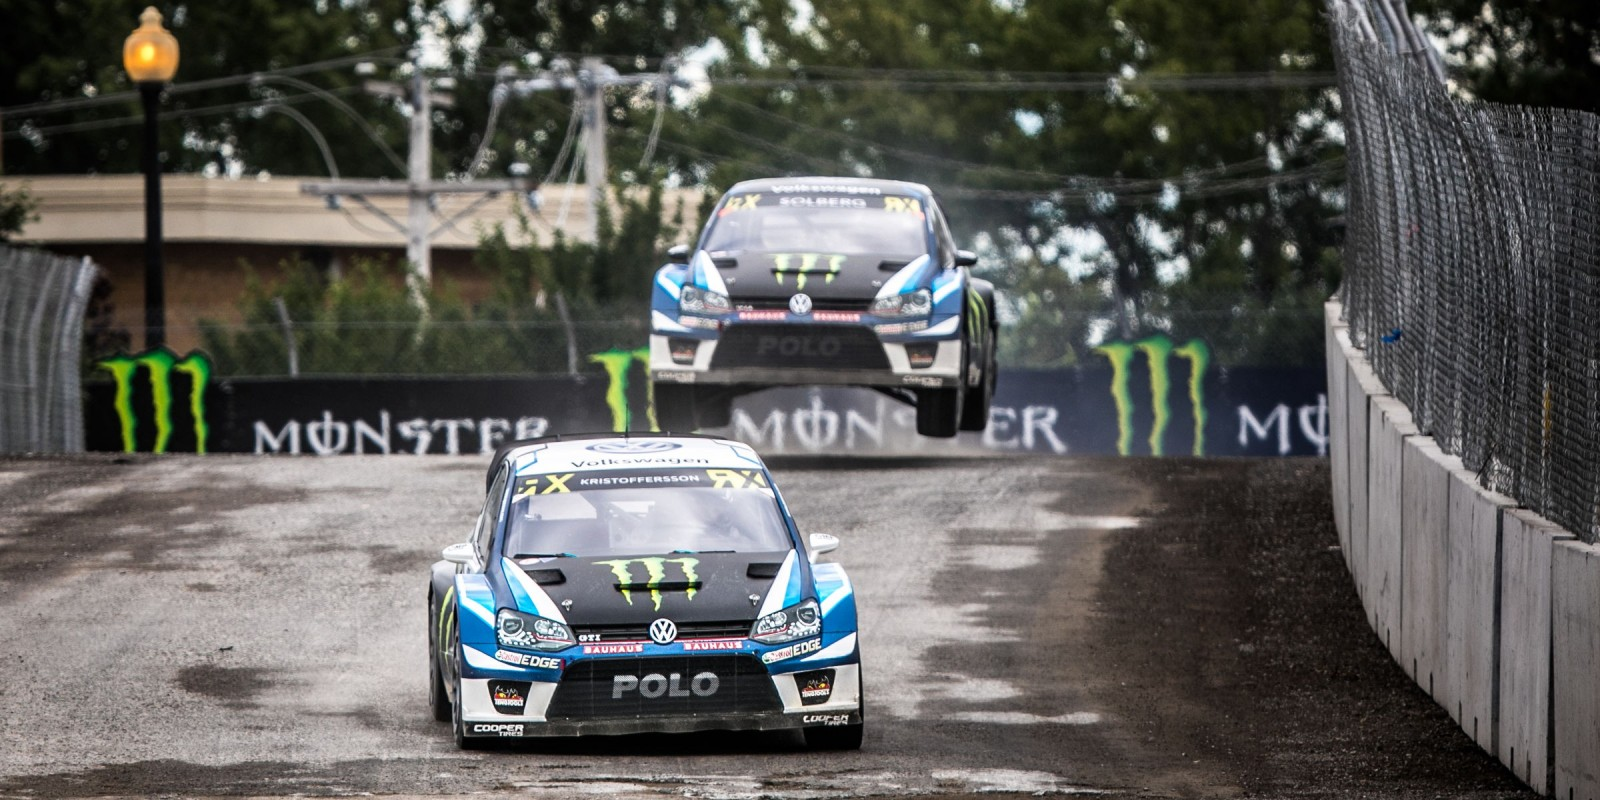 sunday images from the 2017 World RX of Canada